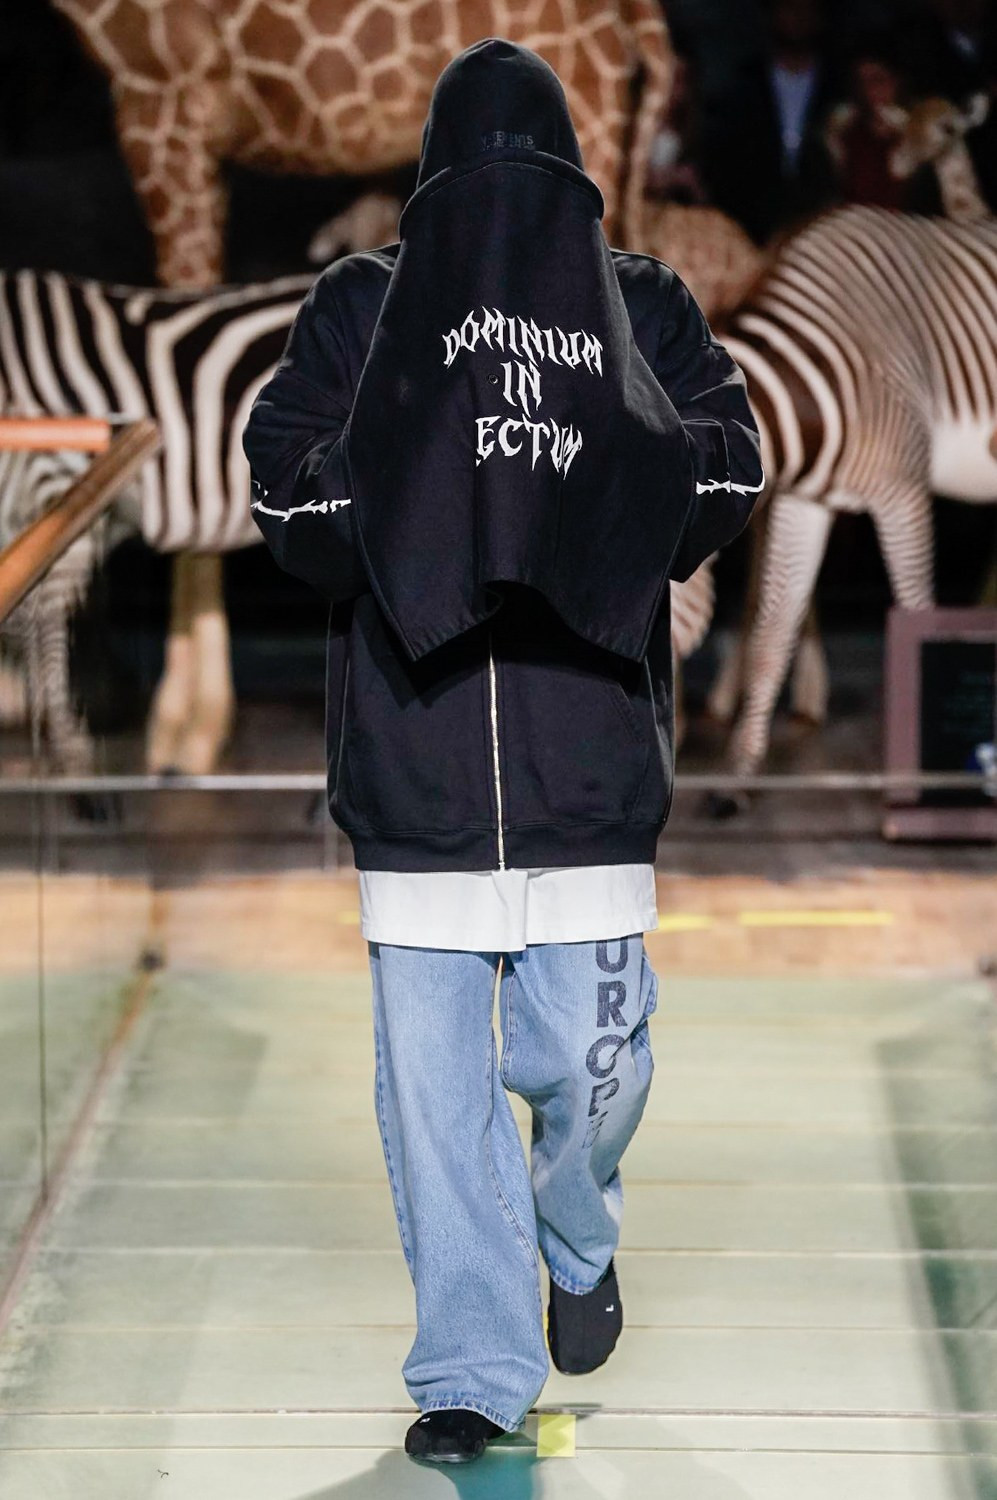 https---vetements-aw19-dtf-magazine.com-image-2019-01-vetements-fall-winter-2019-paris-fashion-week-61